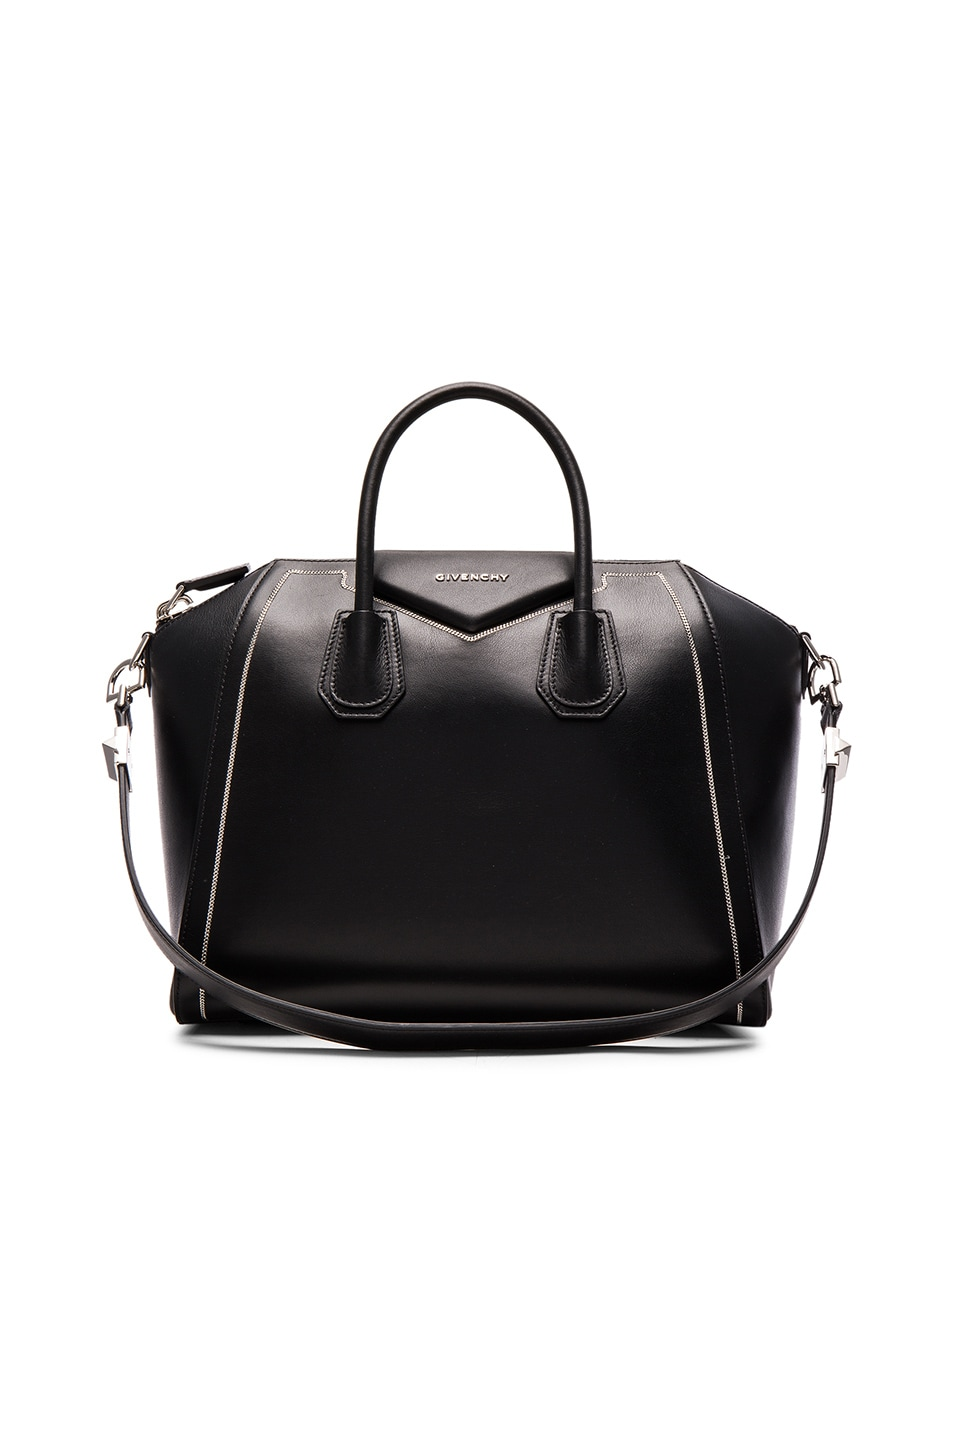 Image 1 of Givenchy Medium Antigona with Chain Detail in Black